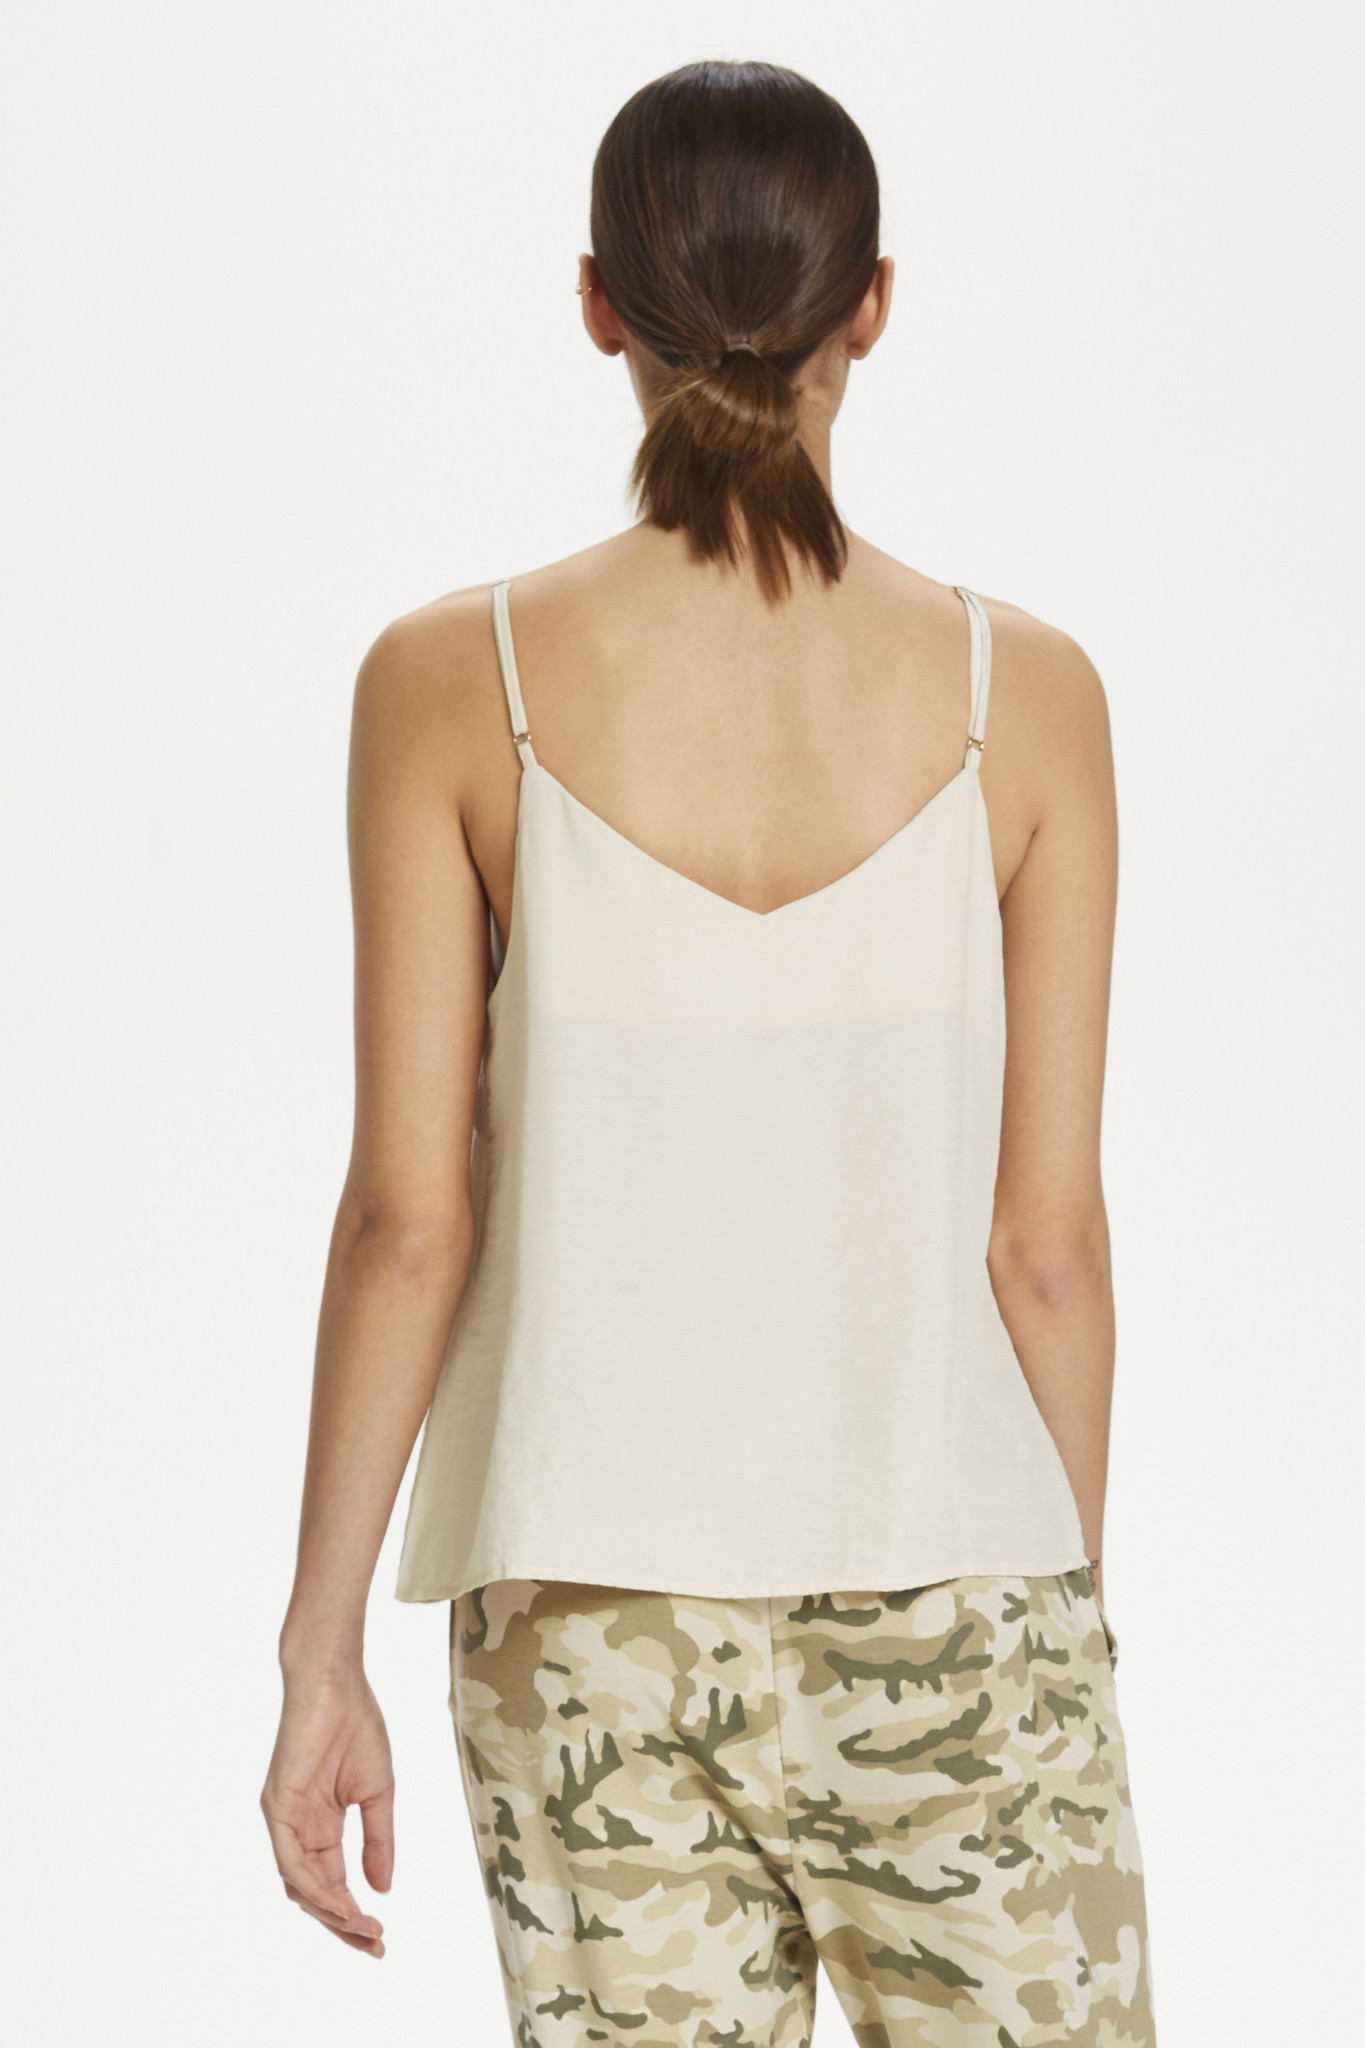 Top CandiaCR Top Whisper Pink-6